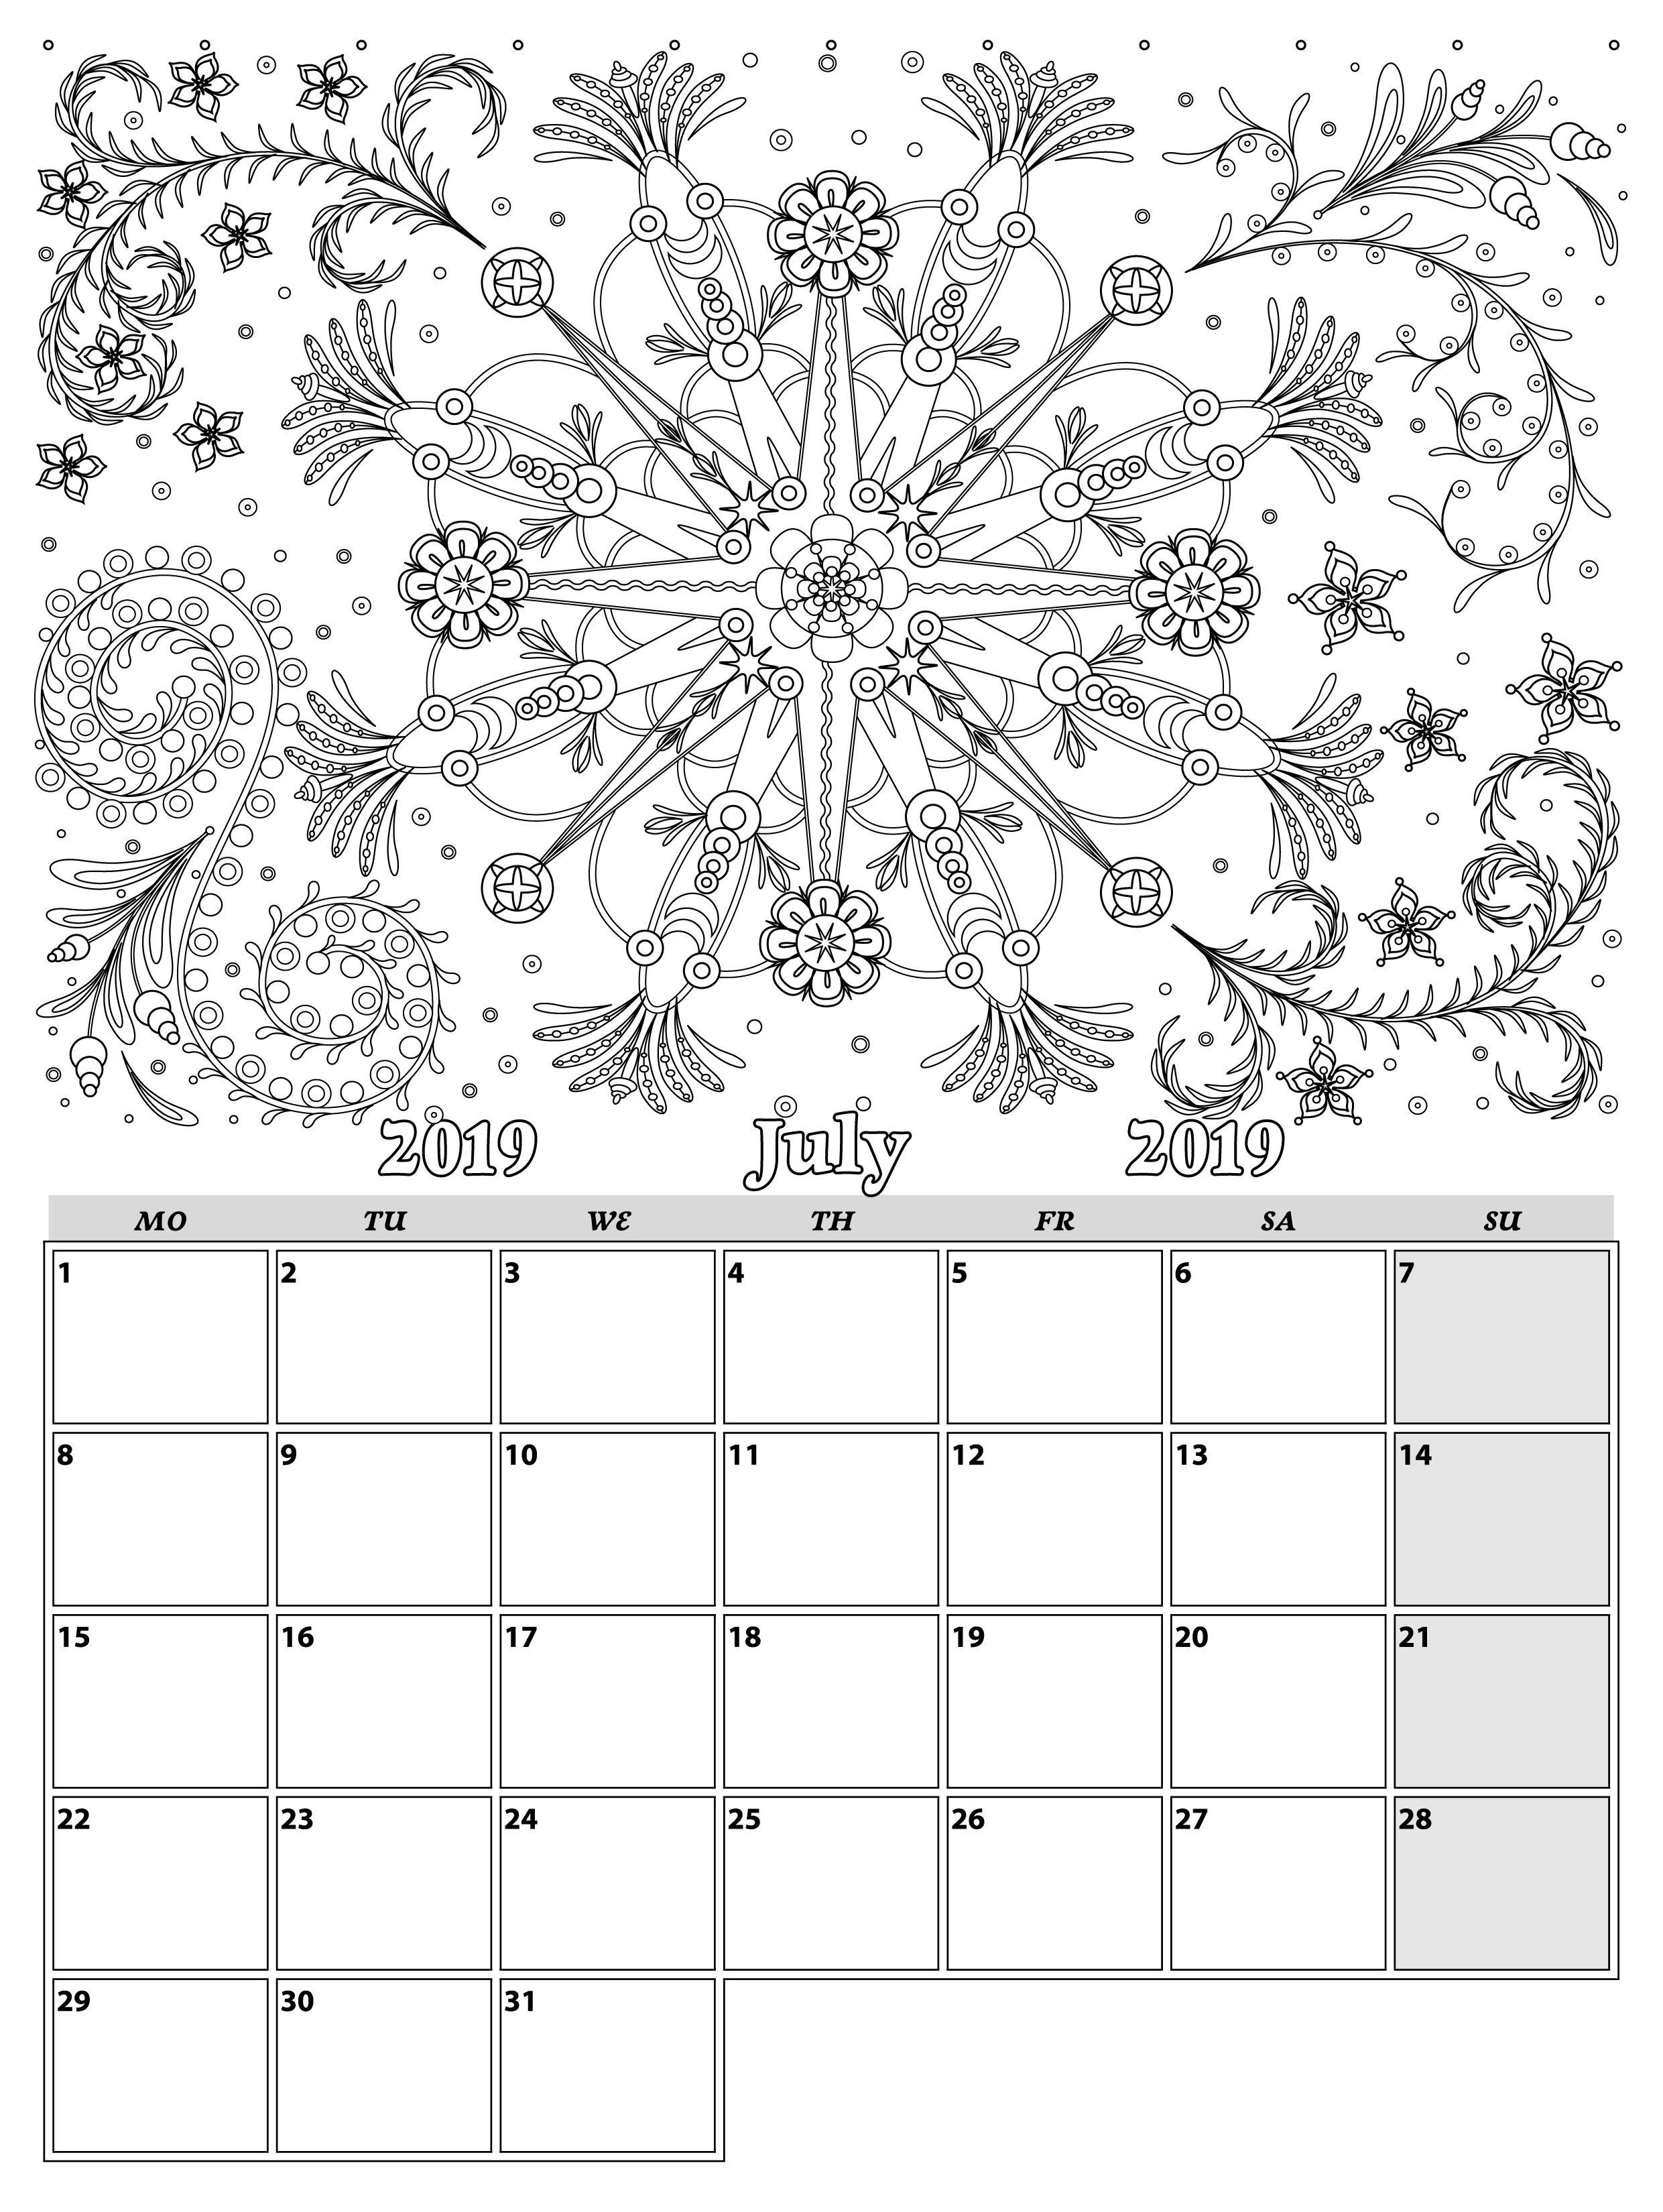 July. Monthly Planner 2019 In Doodle Style For Relax And Plan with regard to Doodle Monthly Planner Printer Templates